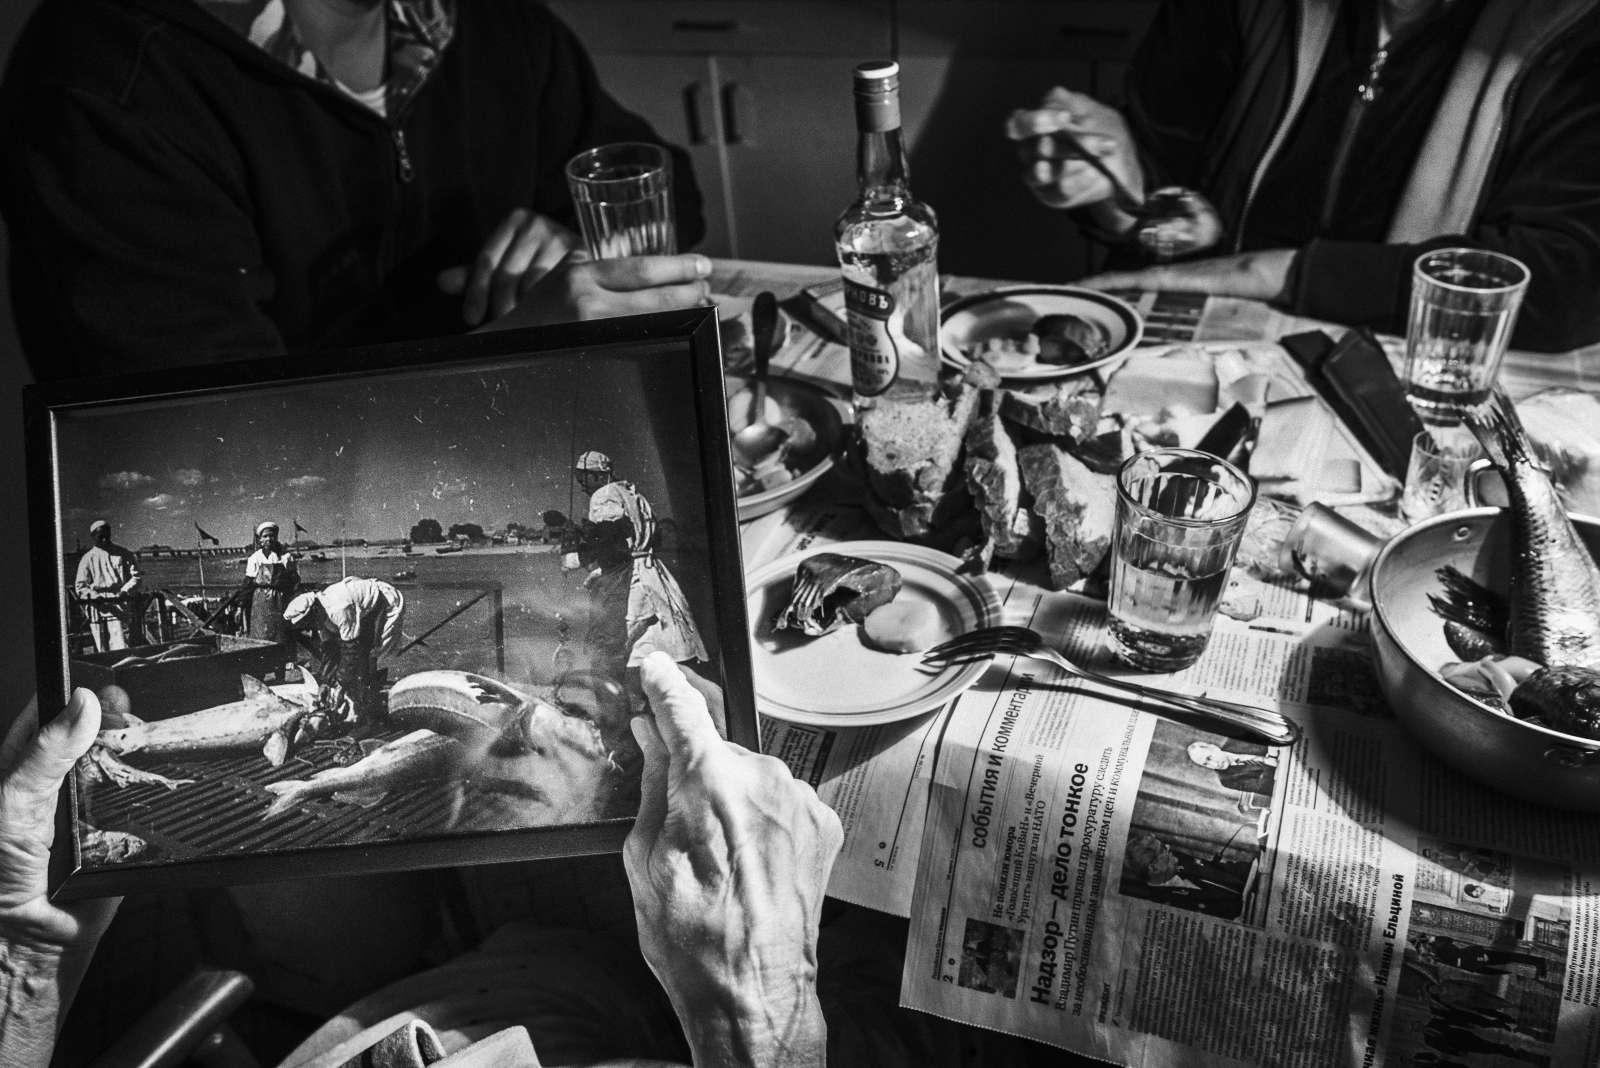 Galina, senior living in Moscow, Russia, shows a photograph taken more than 50 years ago of the fishermen working. She remembers there was a lot of big fish. Here first love was a fisherman. April 2017 Moscow. Russia. © Stoyan Vassev